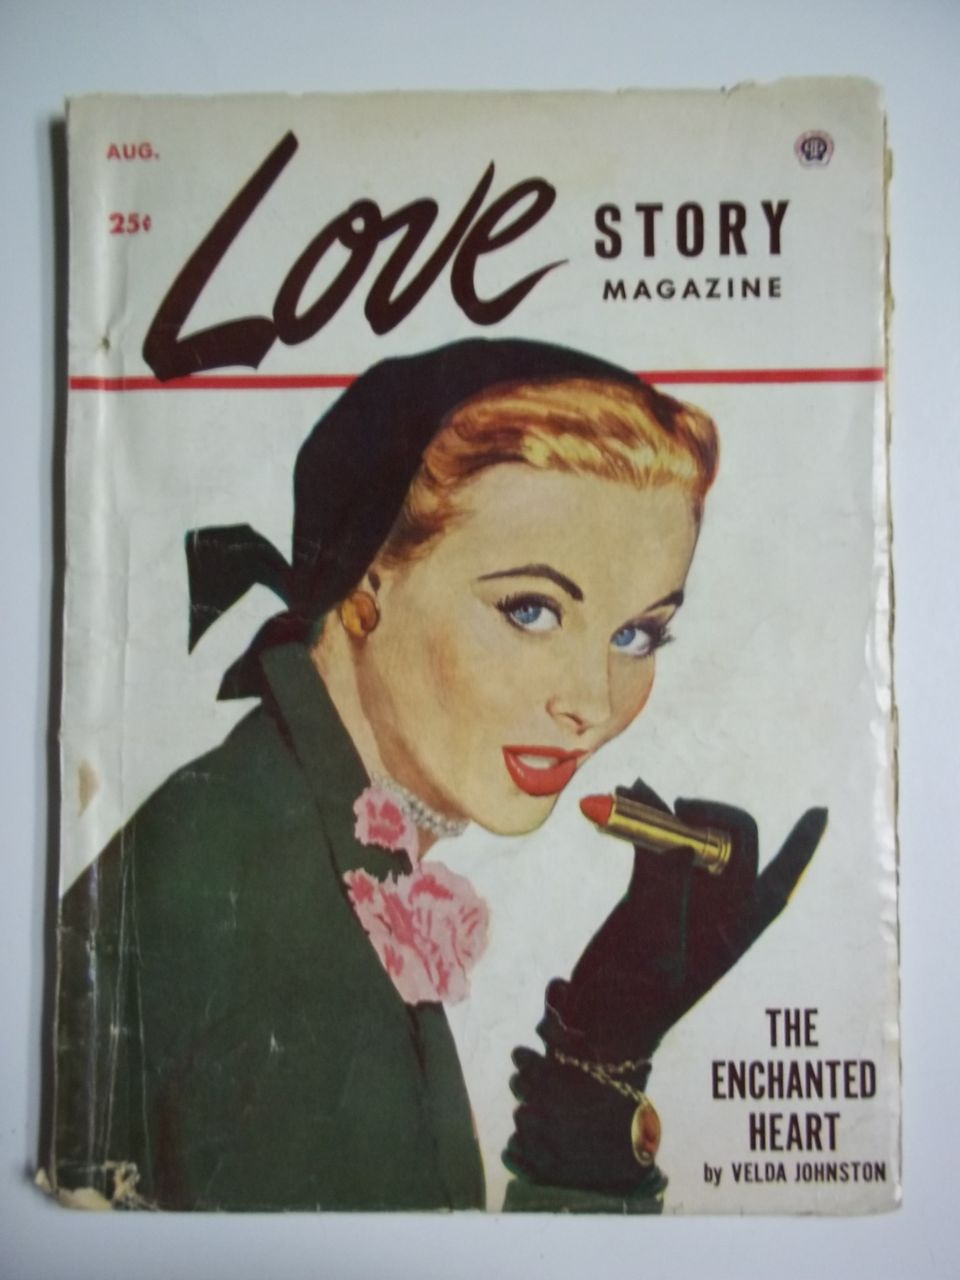 Love Story Vol. 194, No. 2, Aug. 1953 Romance Pulp